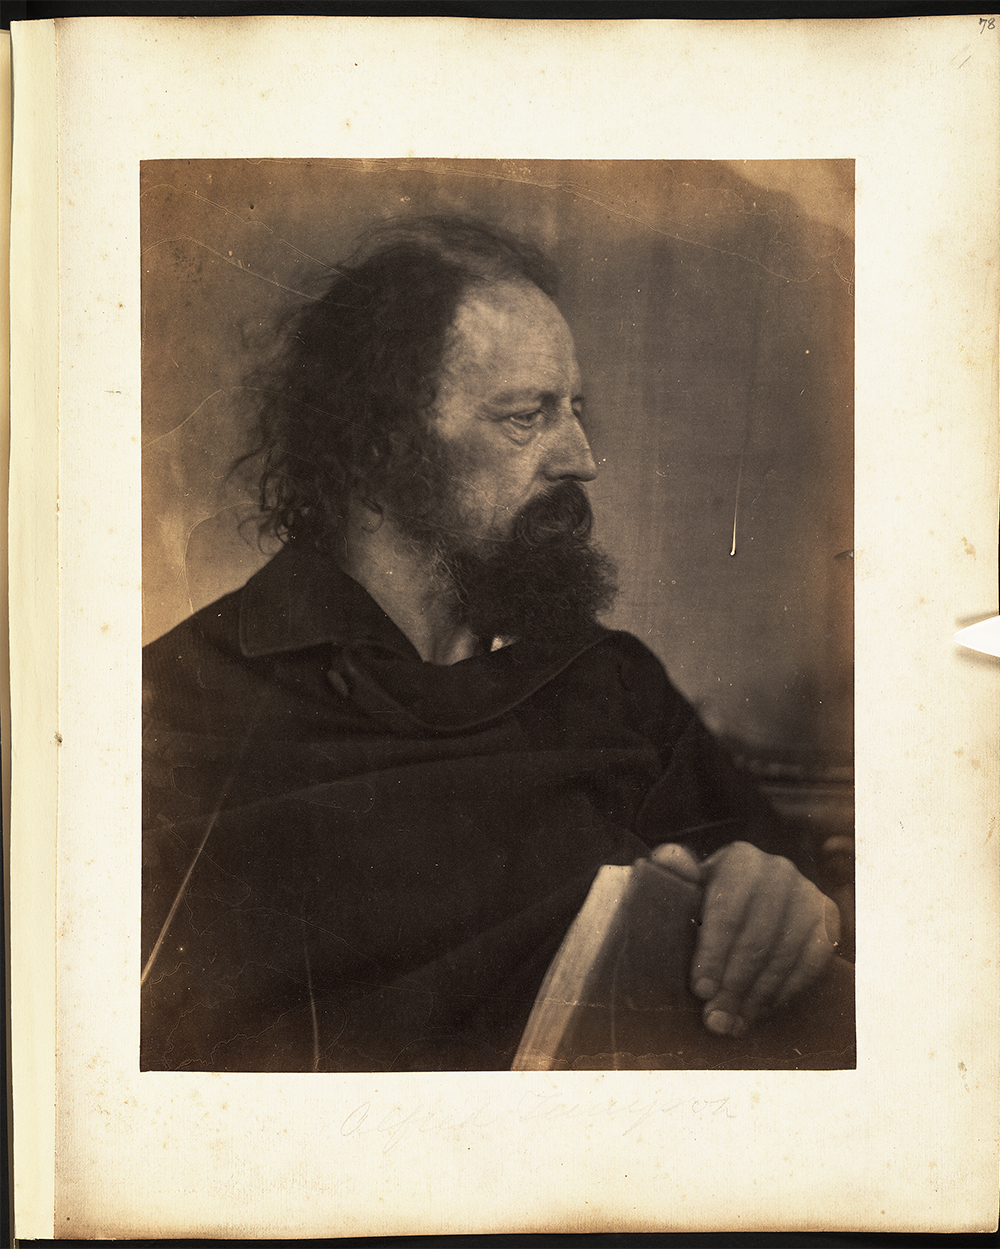 Photo of Alfred Tennyson by Julia Margaret Cameron